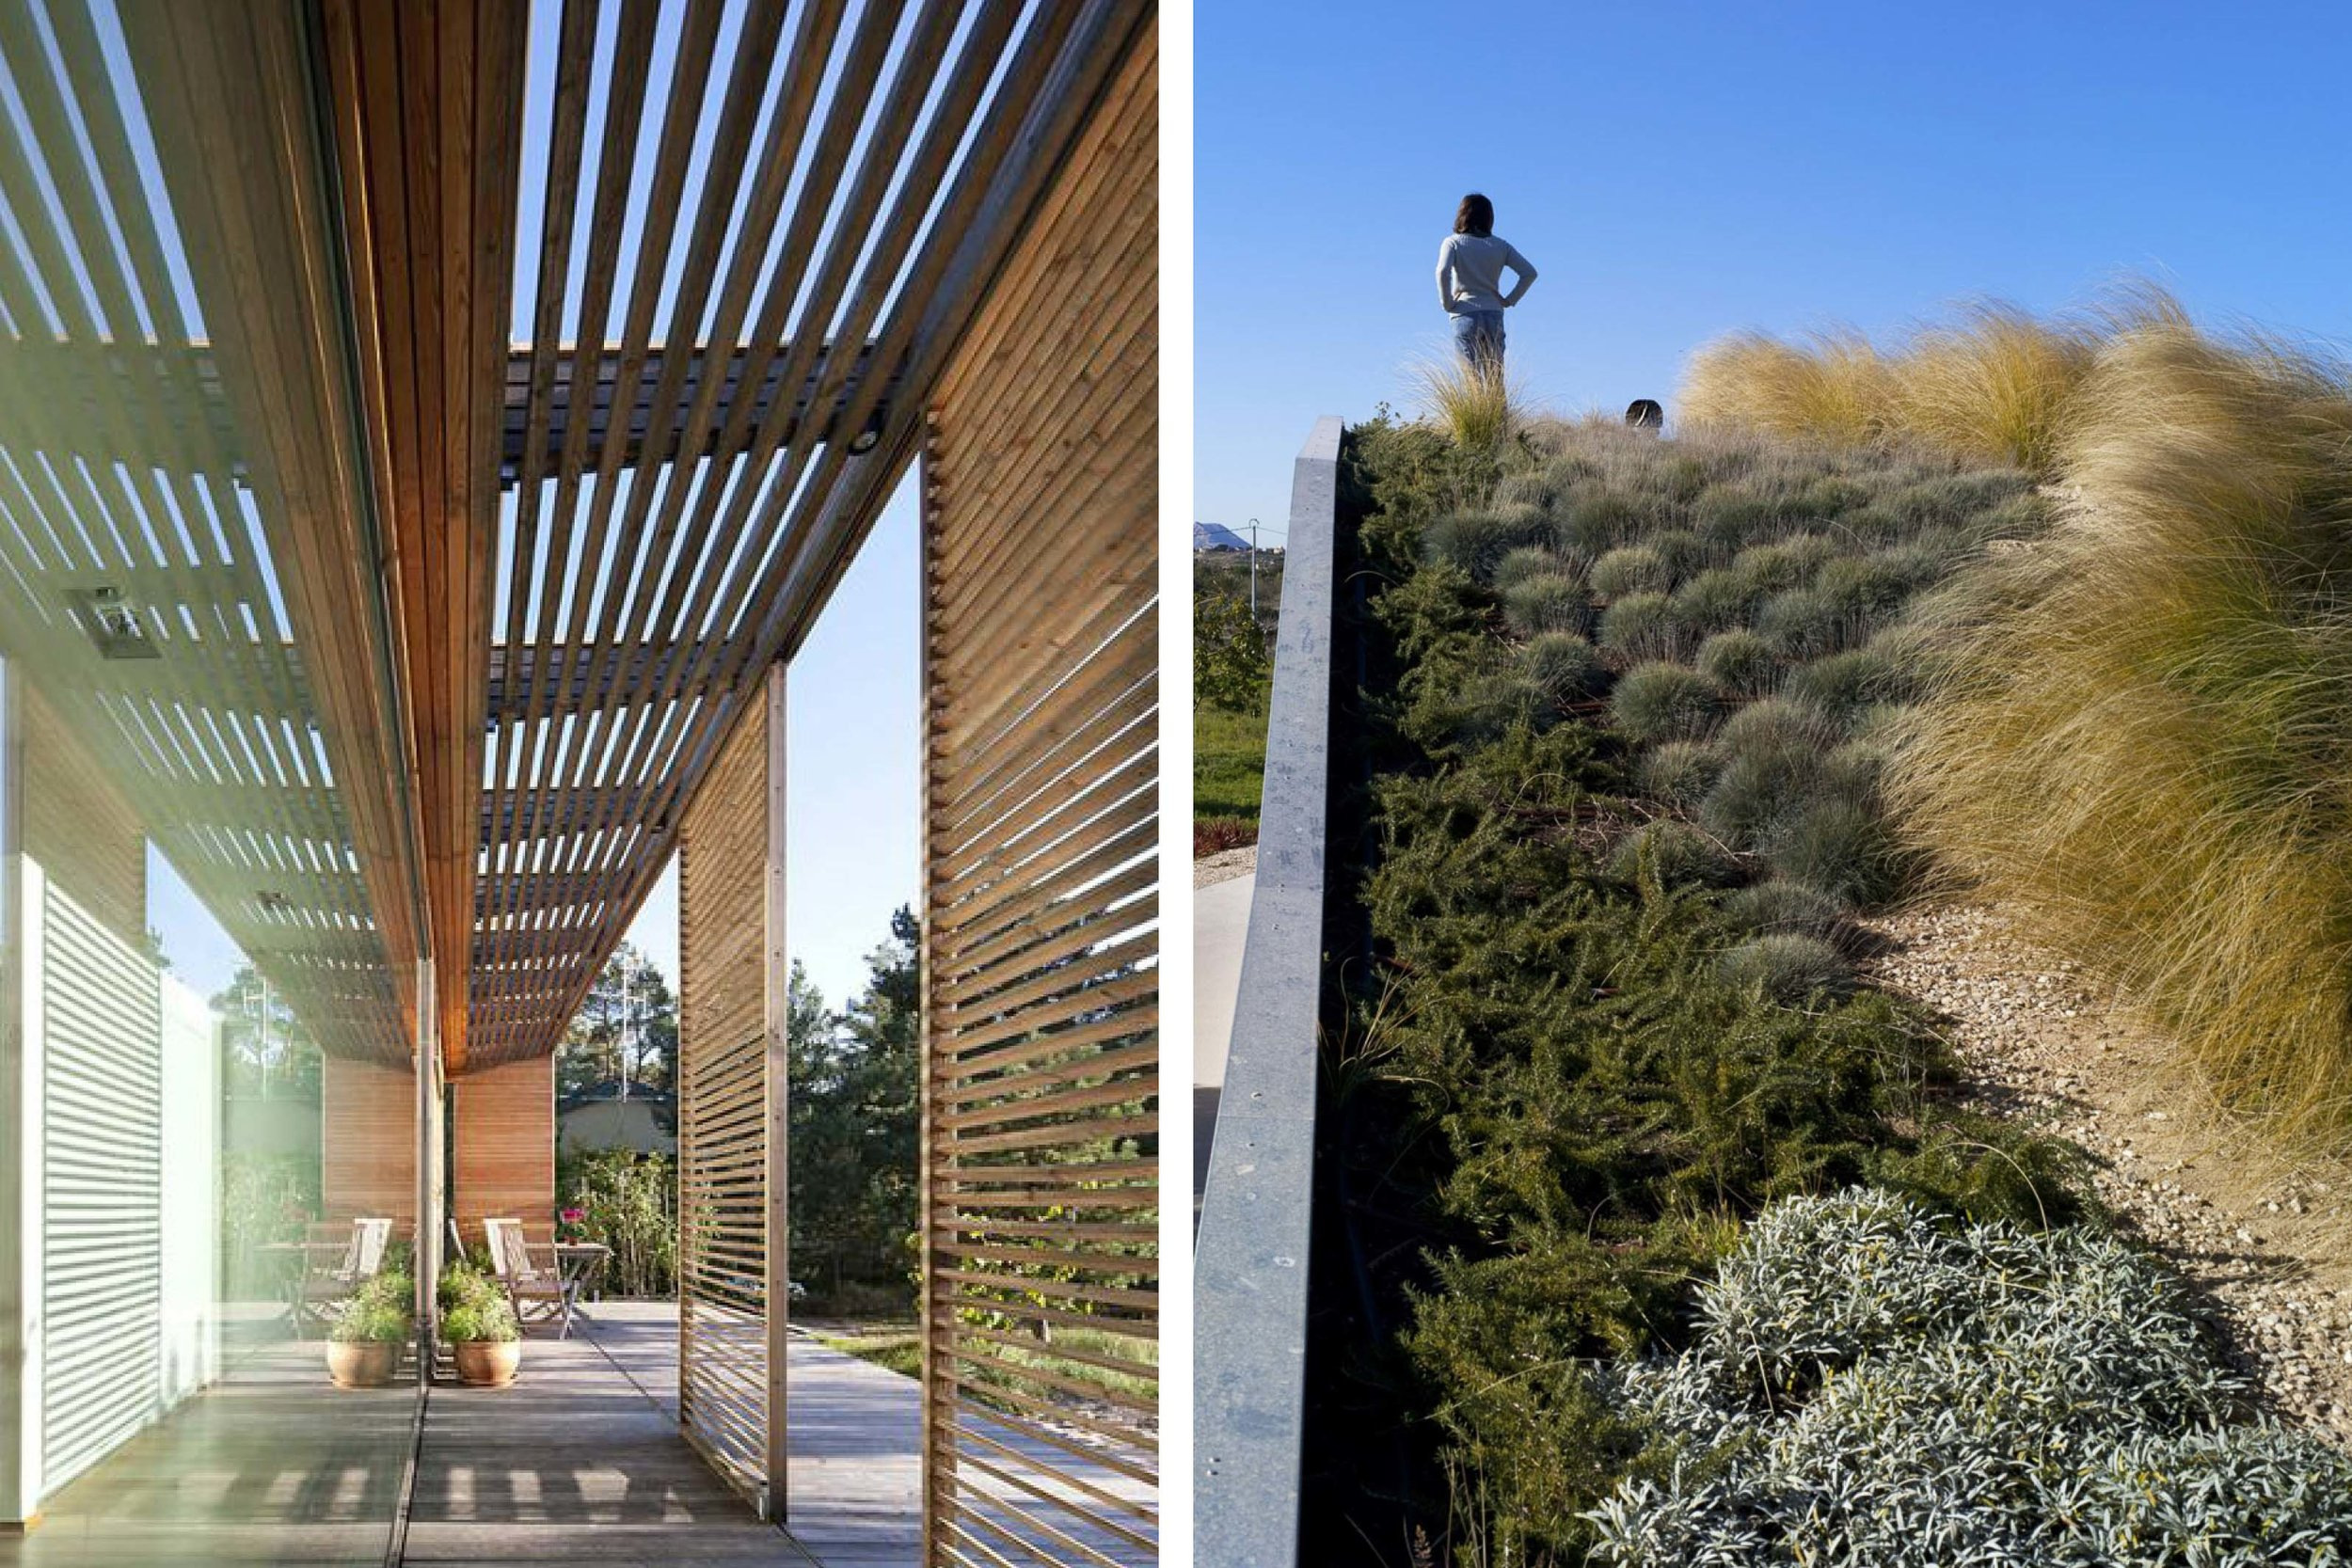 Moden archtiecture and landscaping